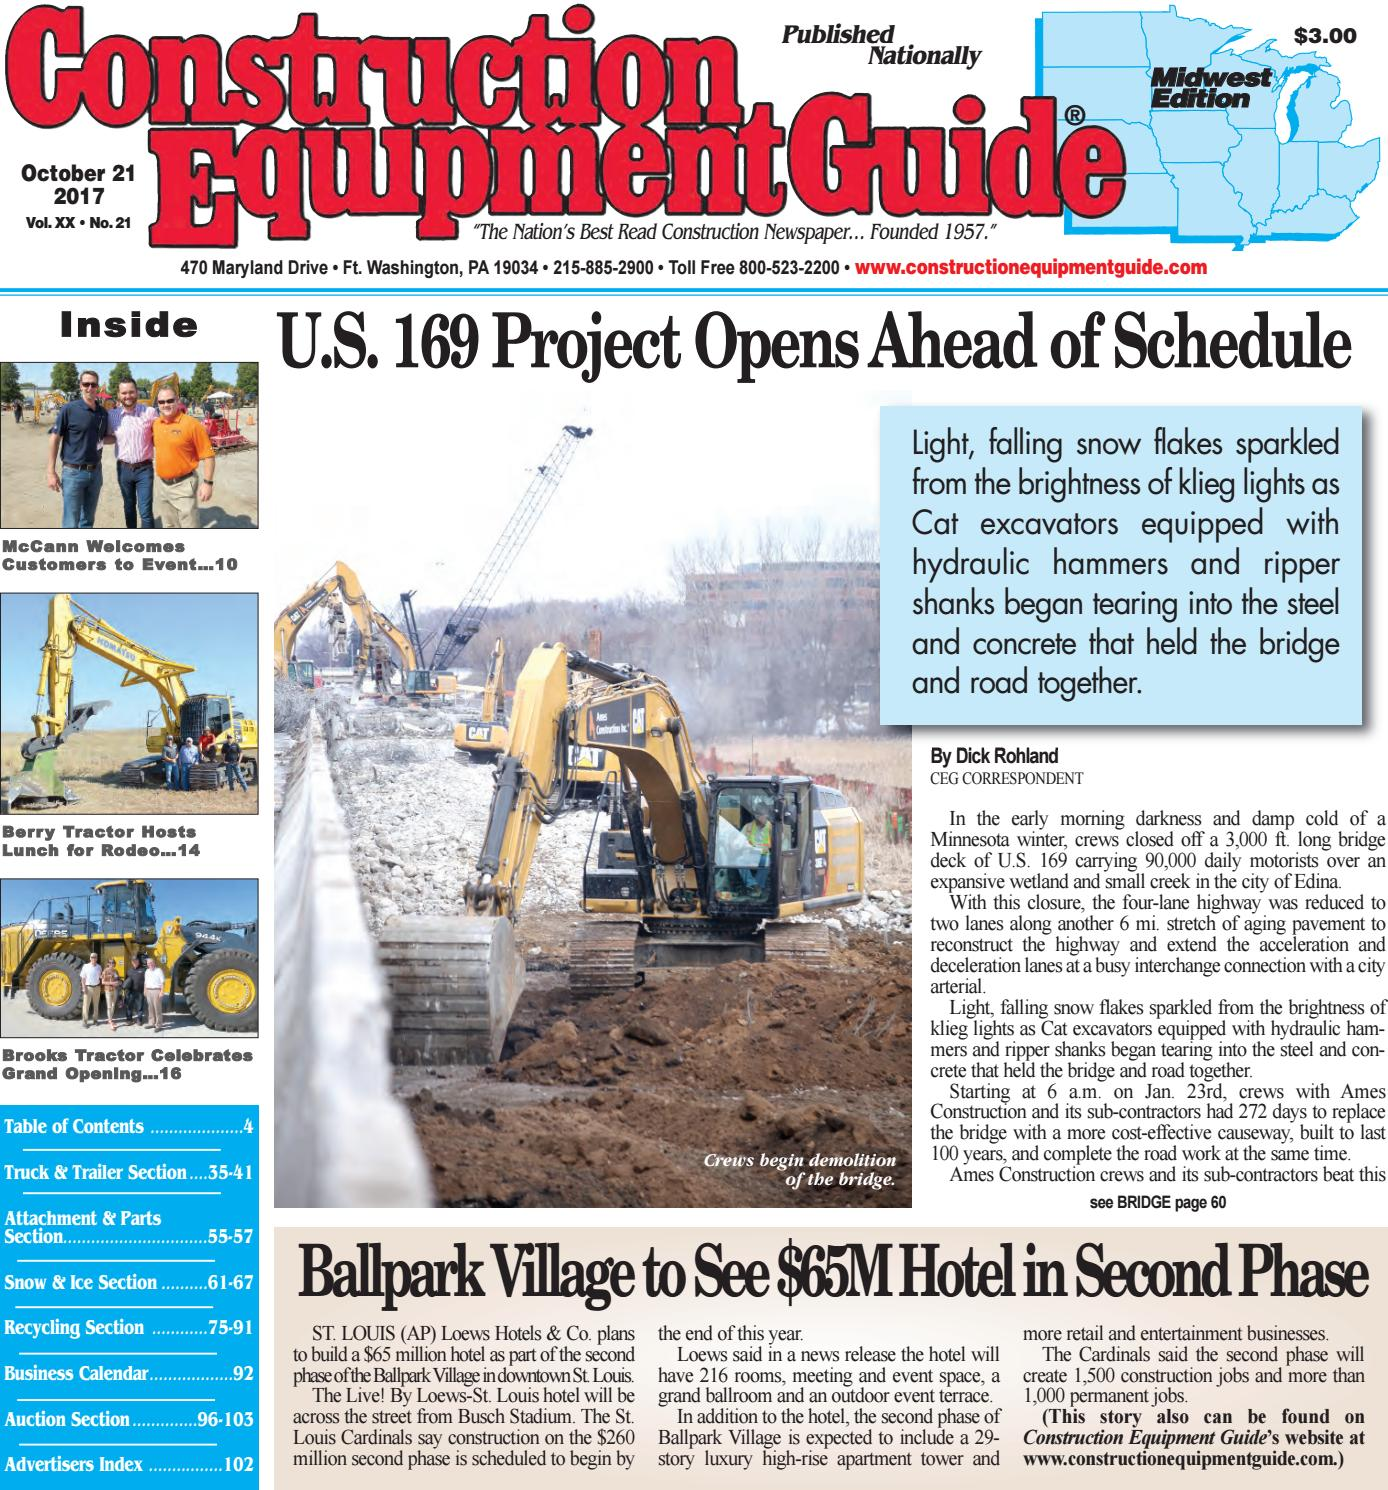 Midwest 21 October 21, 2017 by Construction Equipment Guide